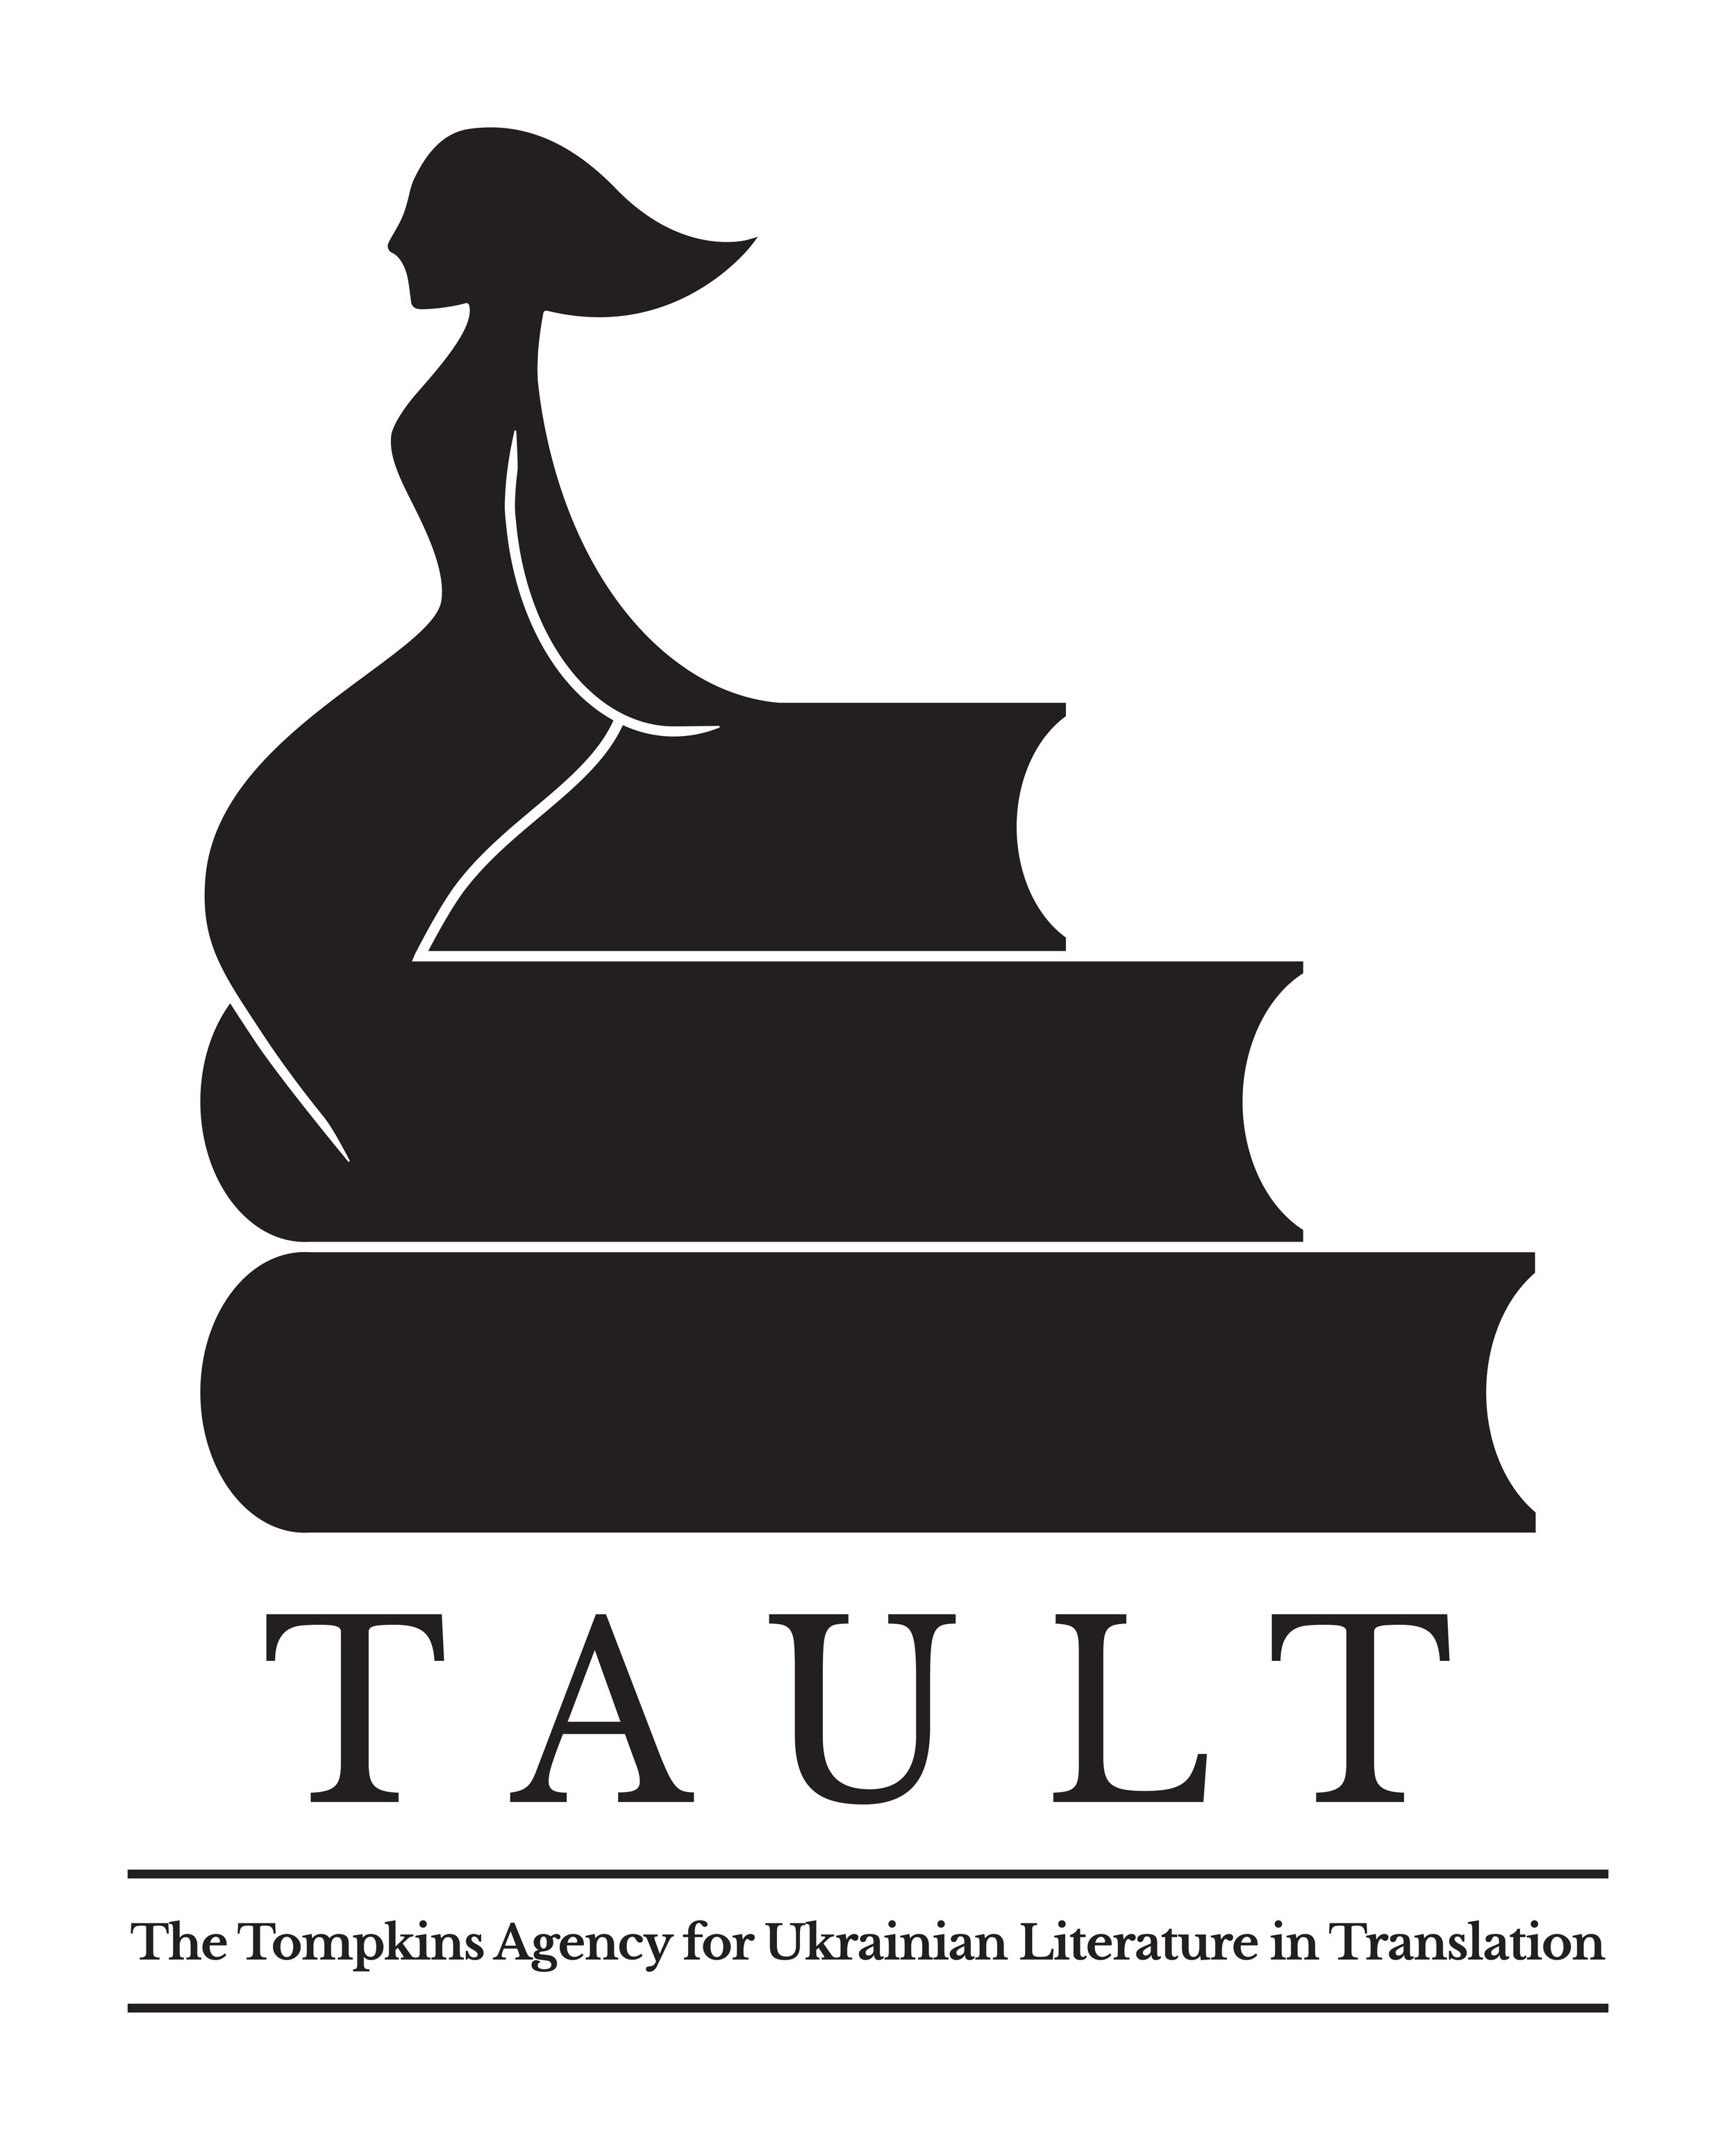 TAULTLogoFINAL Black_Primary Iconic Mark + Name + Full Name.jpg